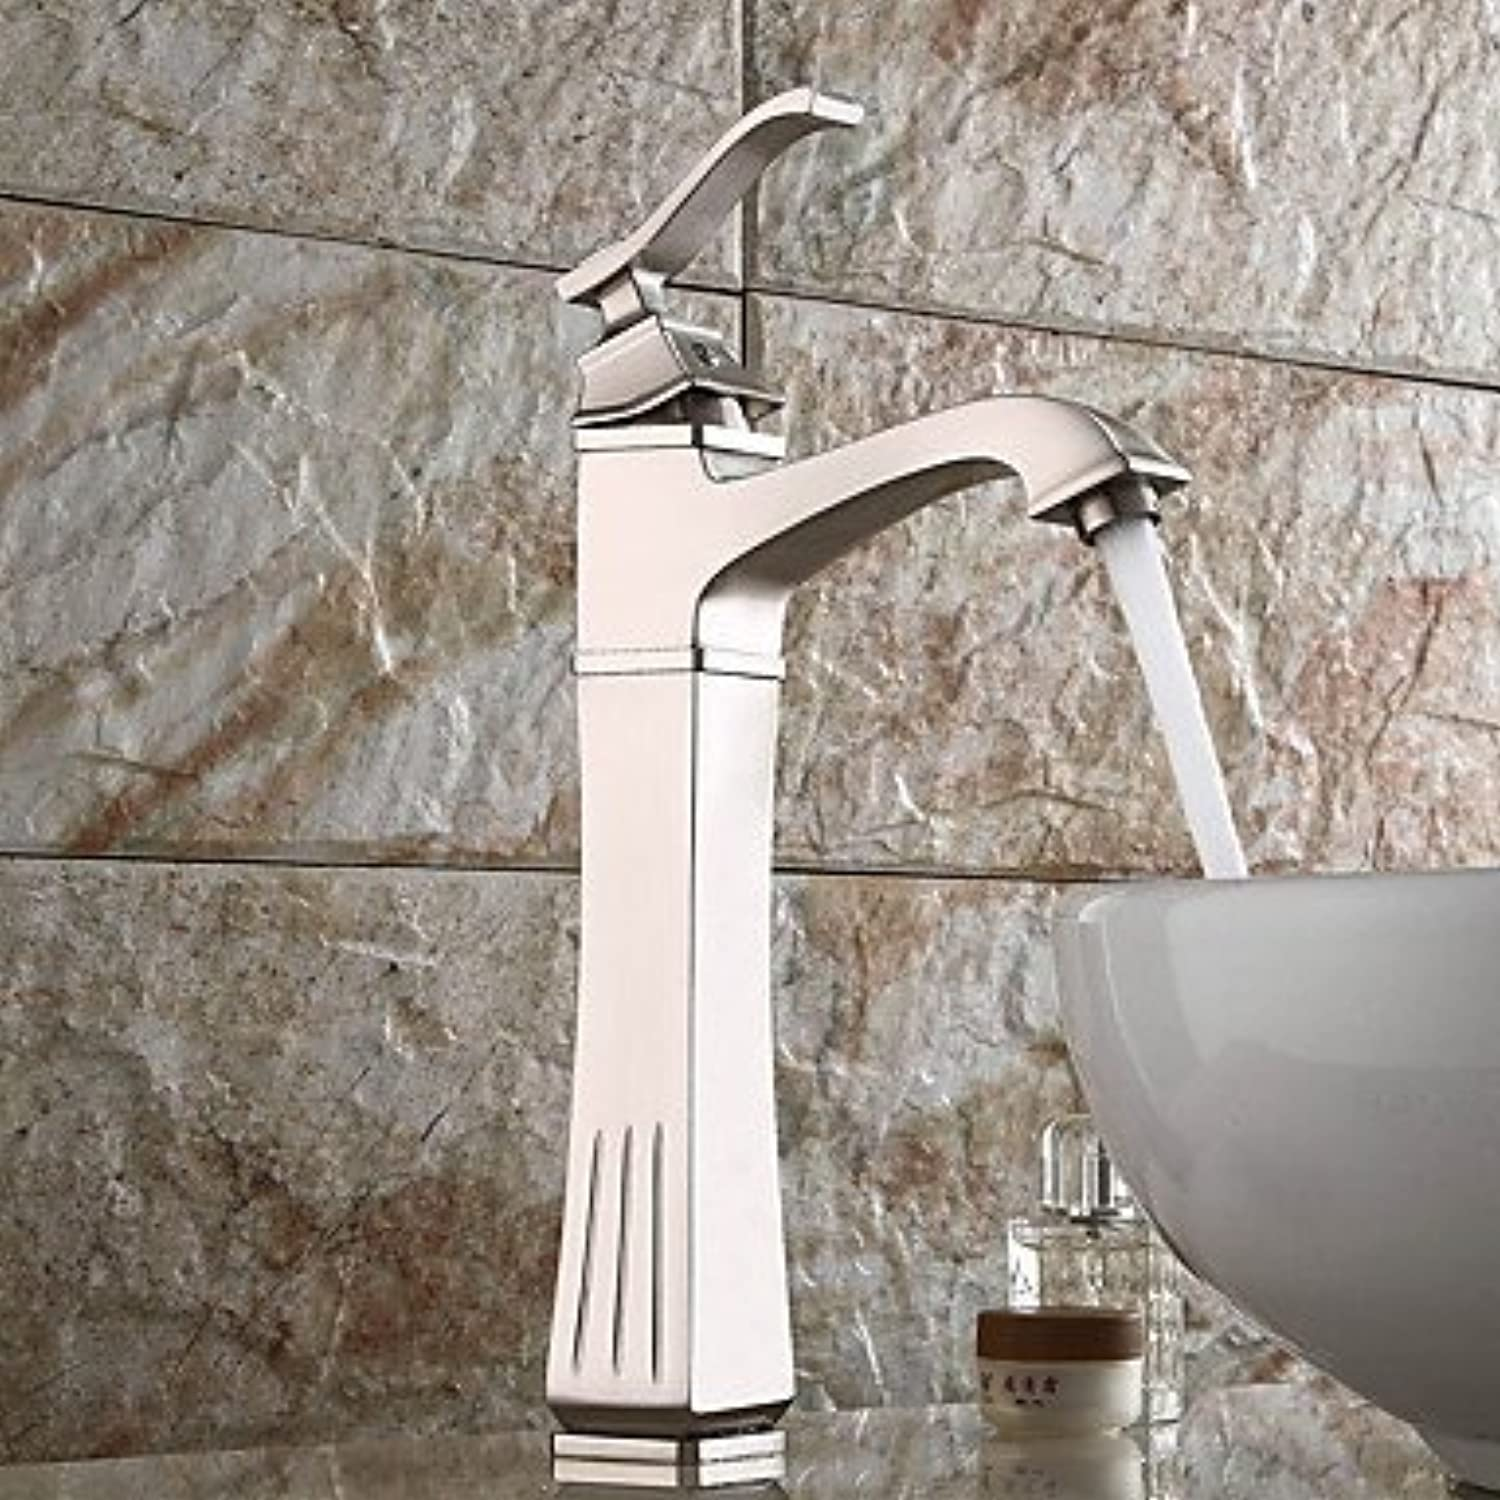 YI KUI Basin Faucets High Quality Brushed Nickel Personalized Single Lever Bathroom Sink Faucet (Hight)